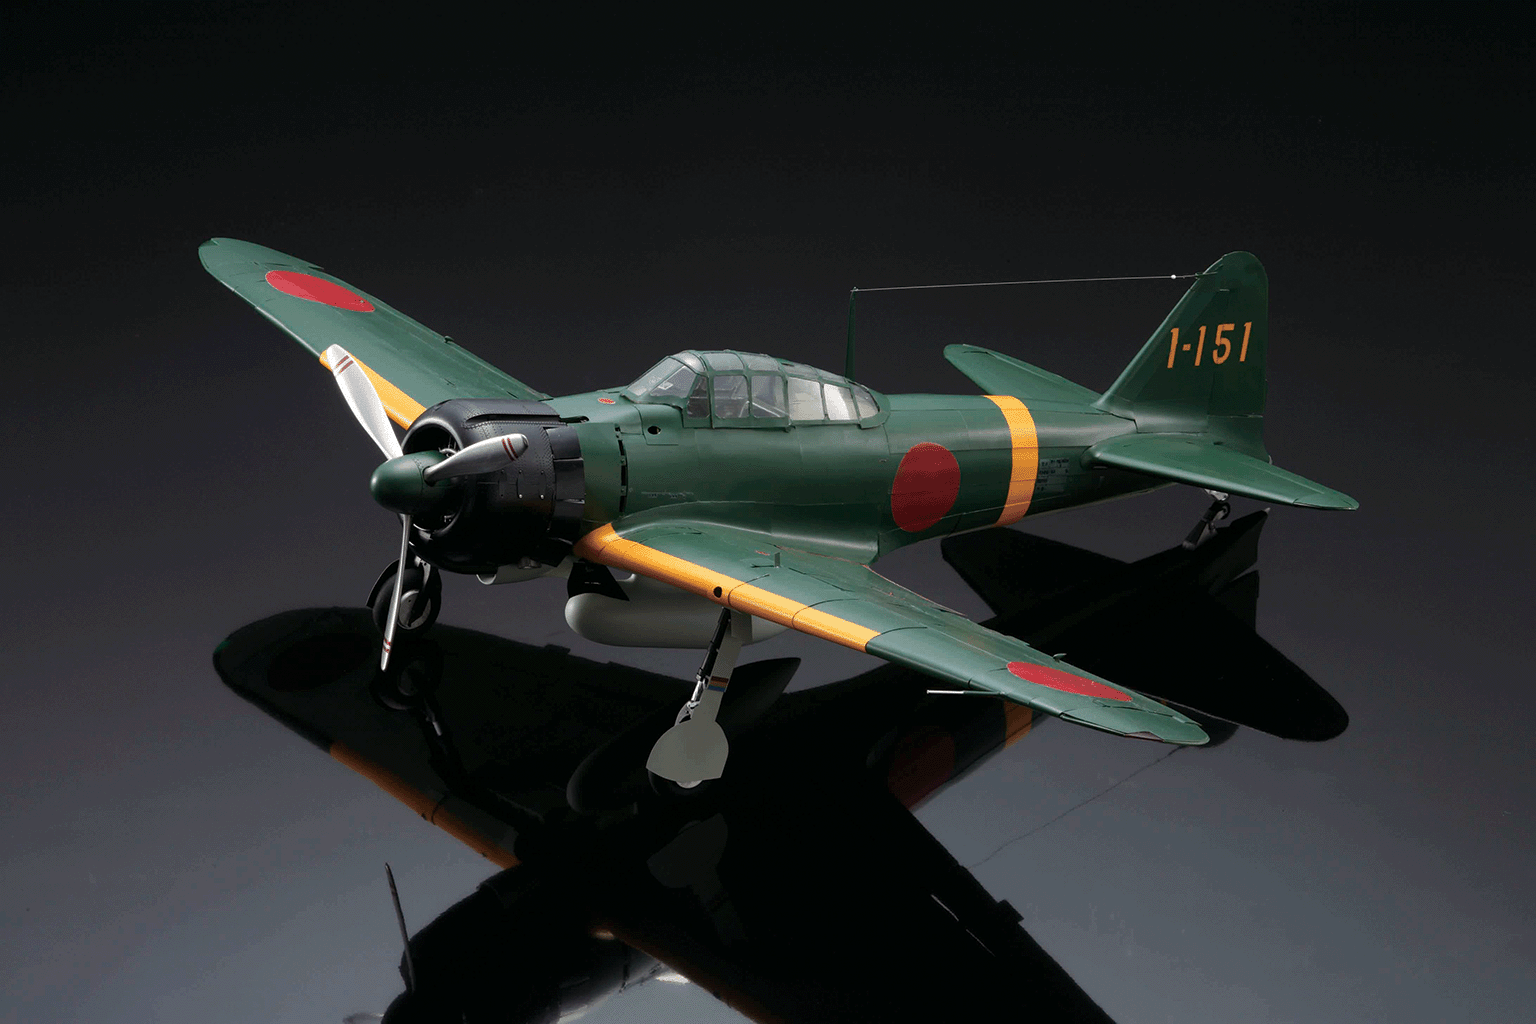 rc wwii planes with Build The Mitsubishi Zero on Build The Mitsubishi Zero moreover Attachment likewise Watch besides 464356 Armys Ersatz Gliders Wwii as well This Guy Really Really Loves Virgin So He Builds This.